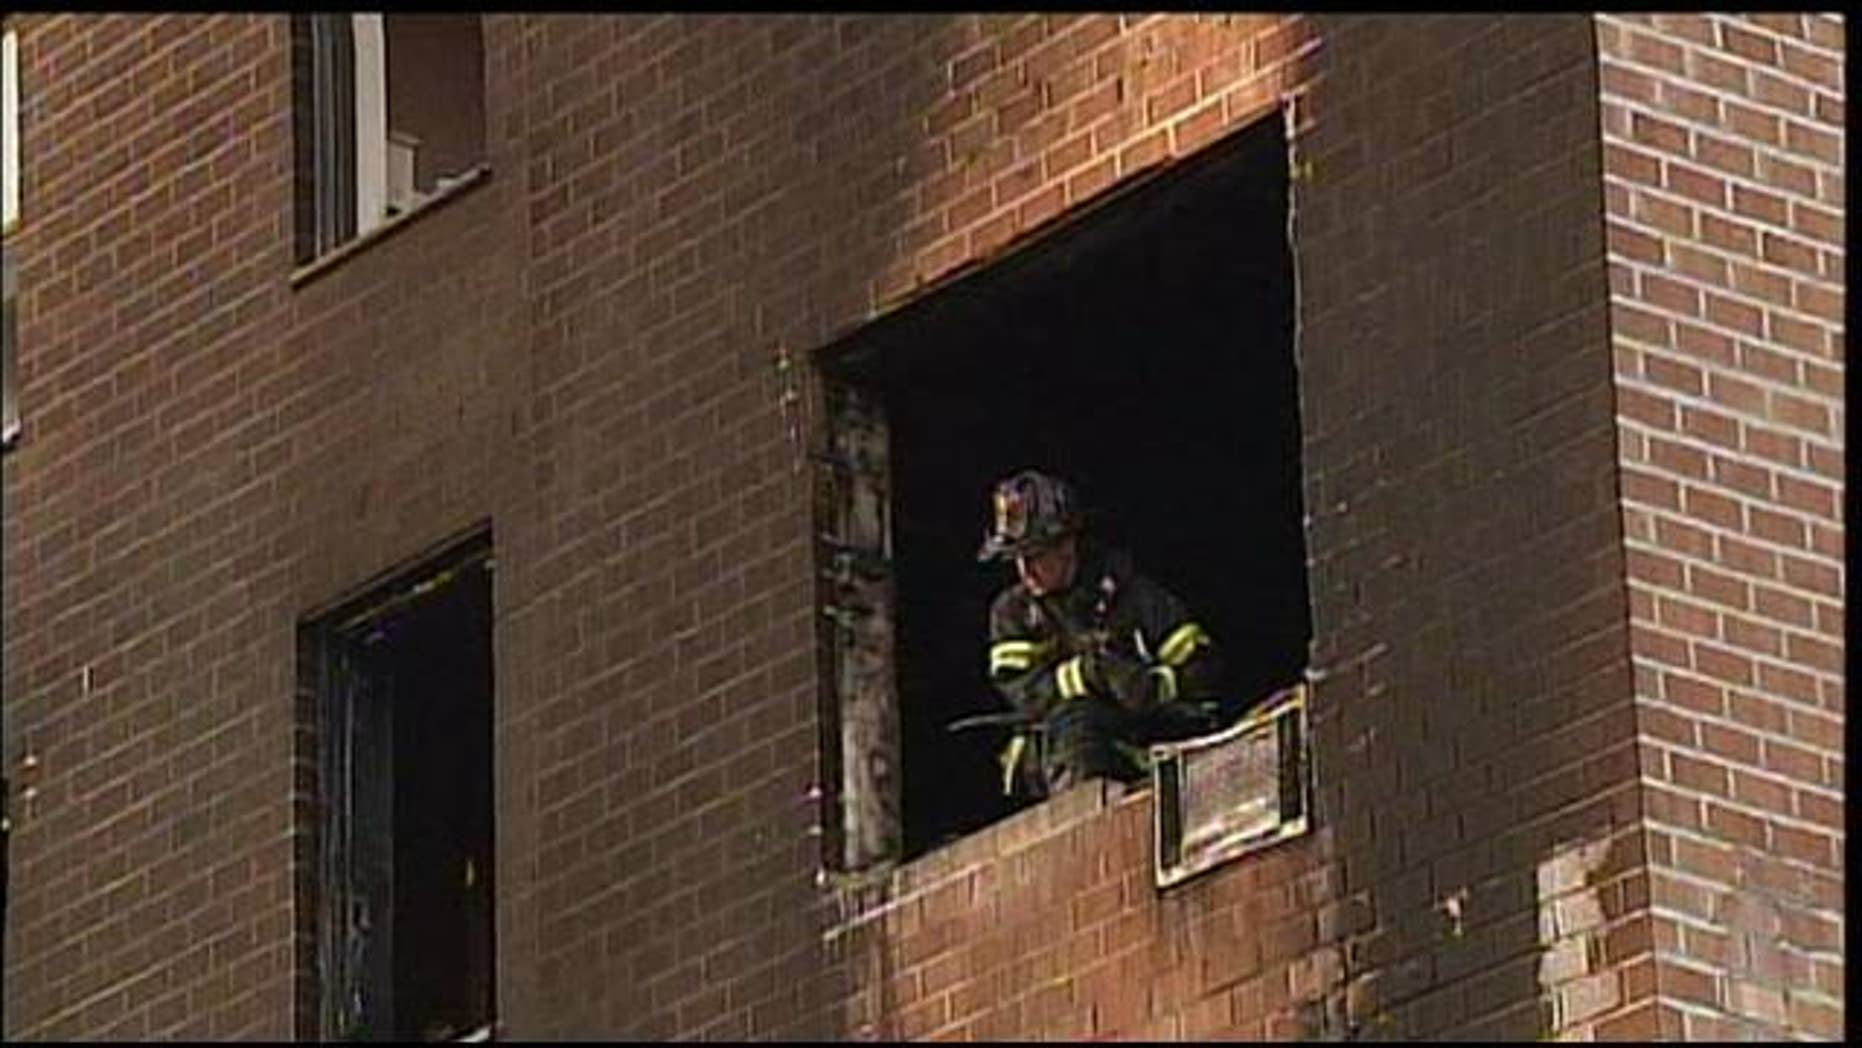 June 17, 2012: A firefighter is seen at the scene of an apartment fire in New York.